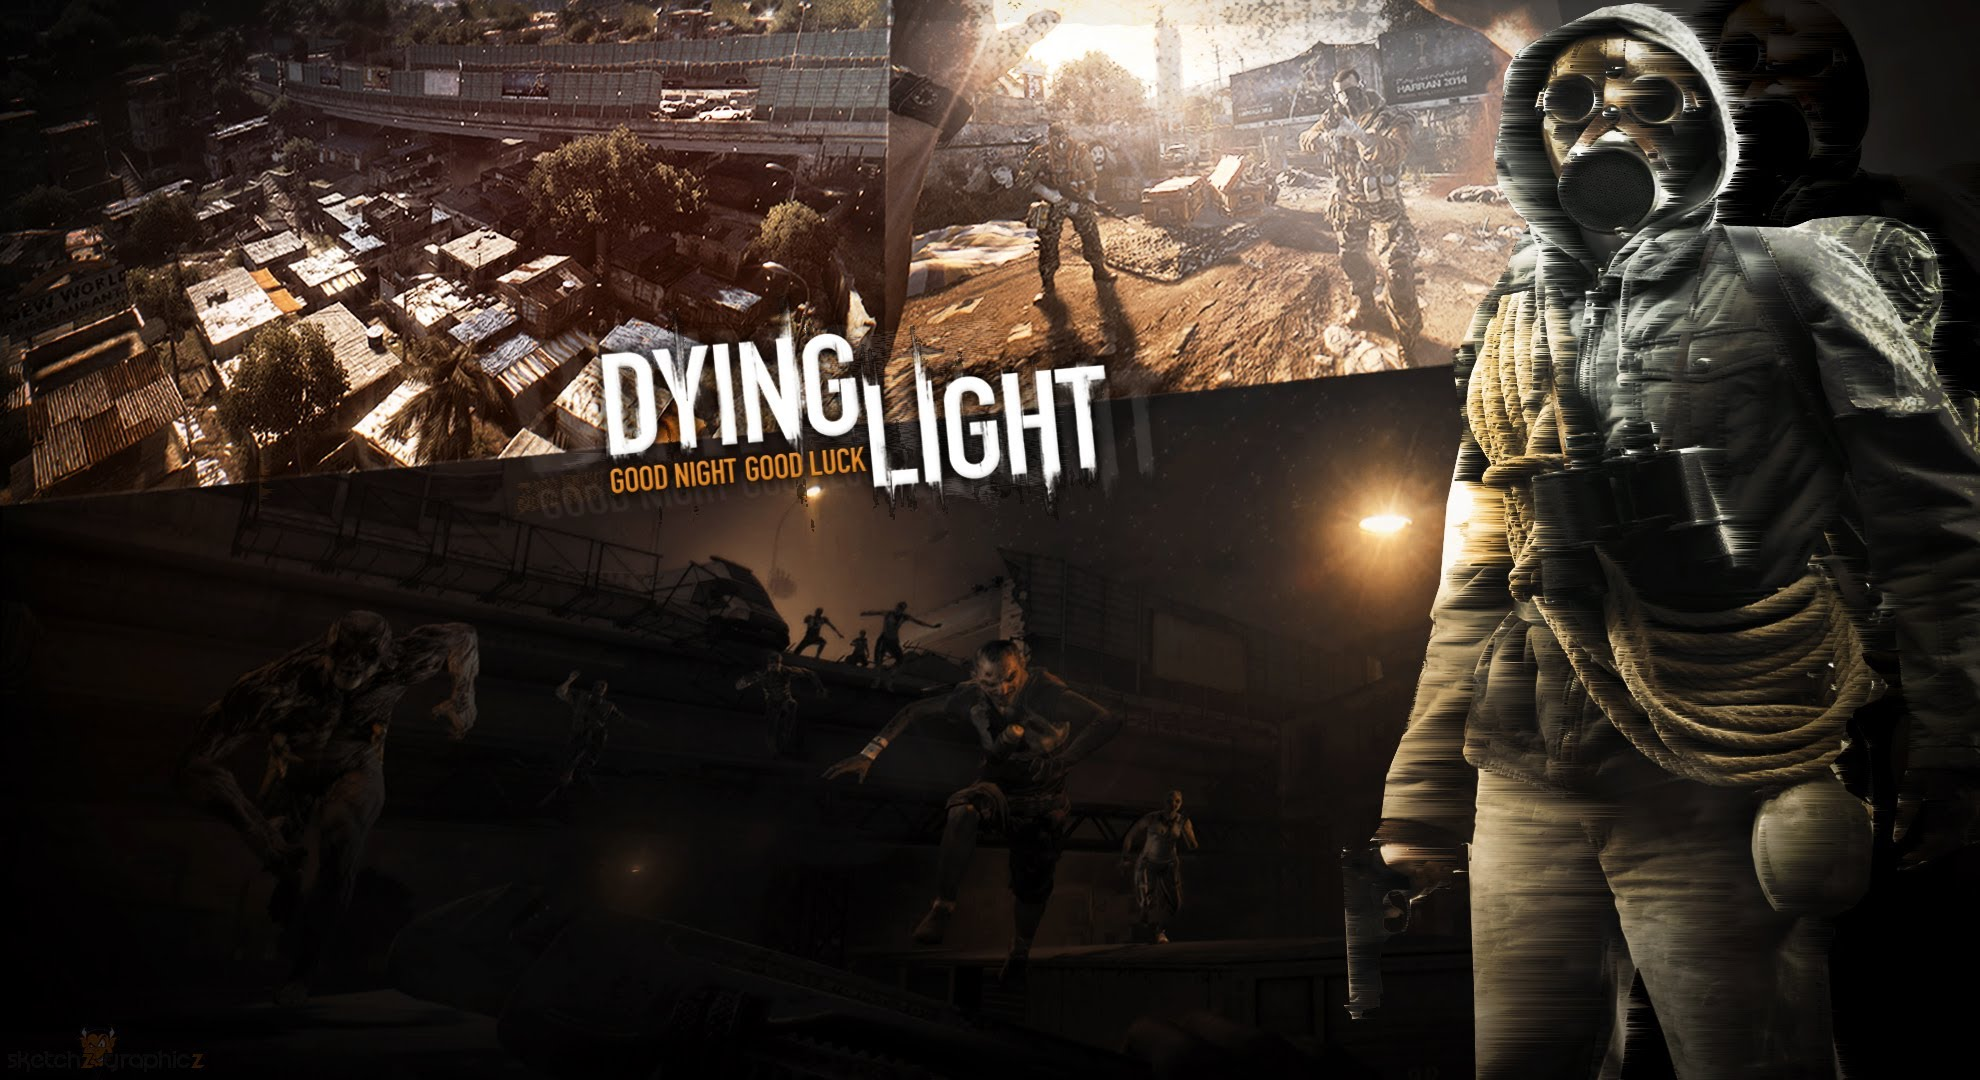 Dying Light 30850 1920x1080 4841052 Survival Horror Action Techland Cross Platform Computer Game 92920 1980x1080